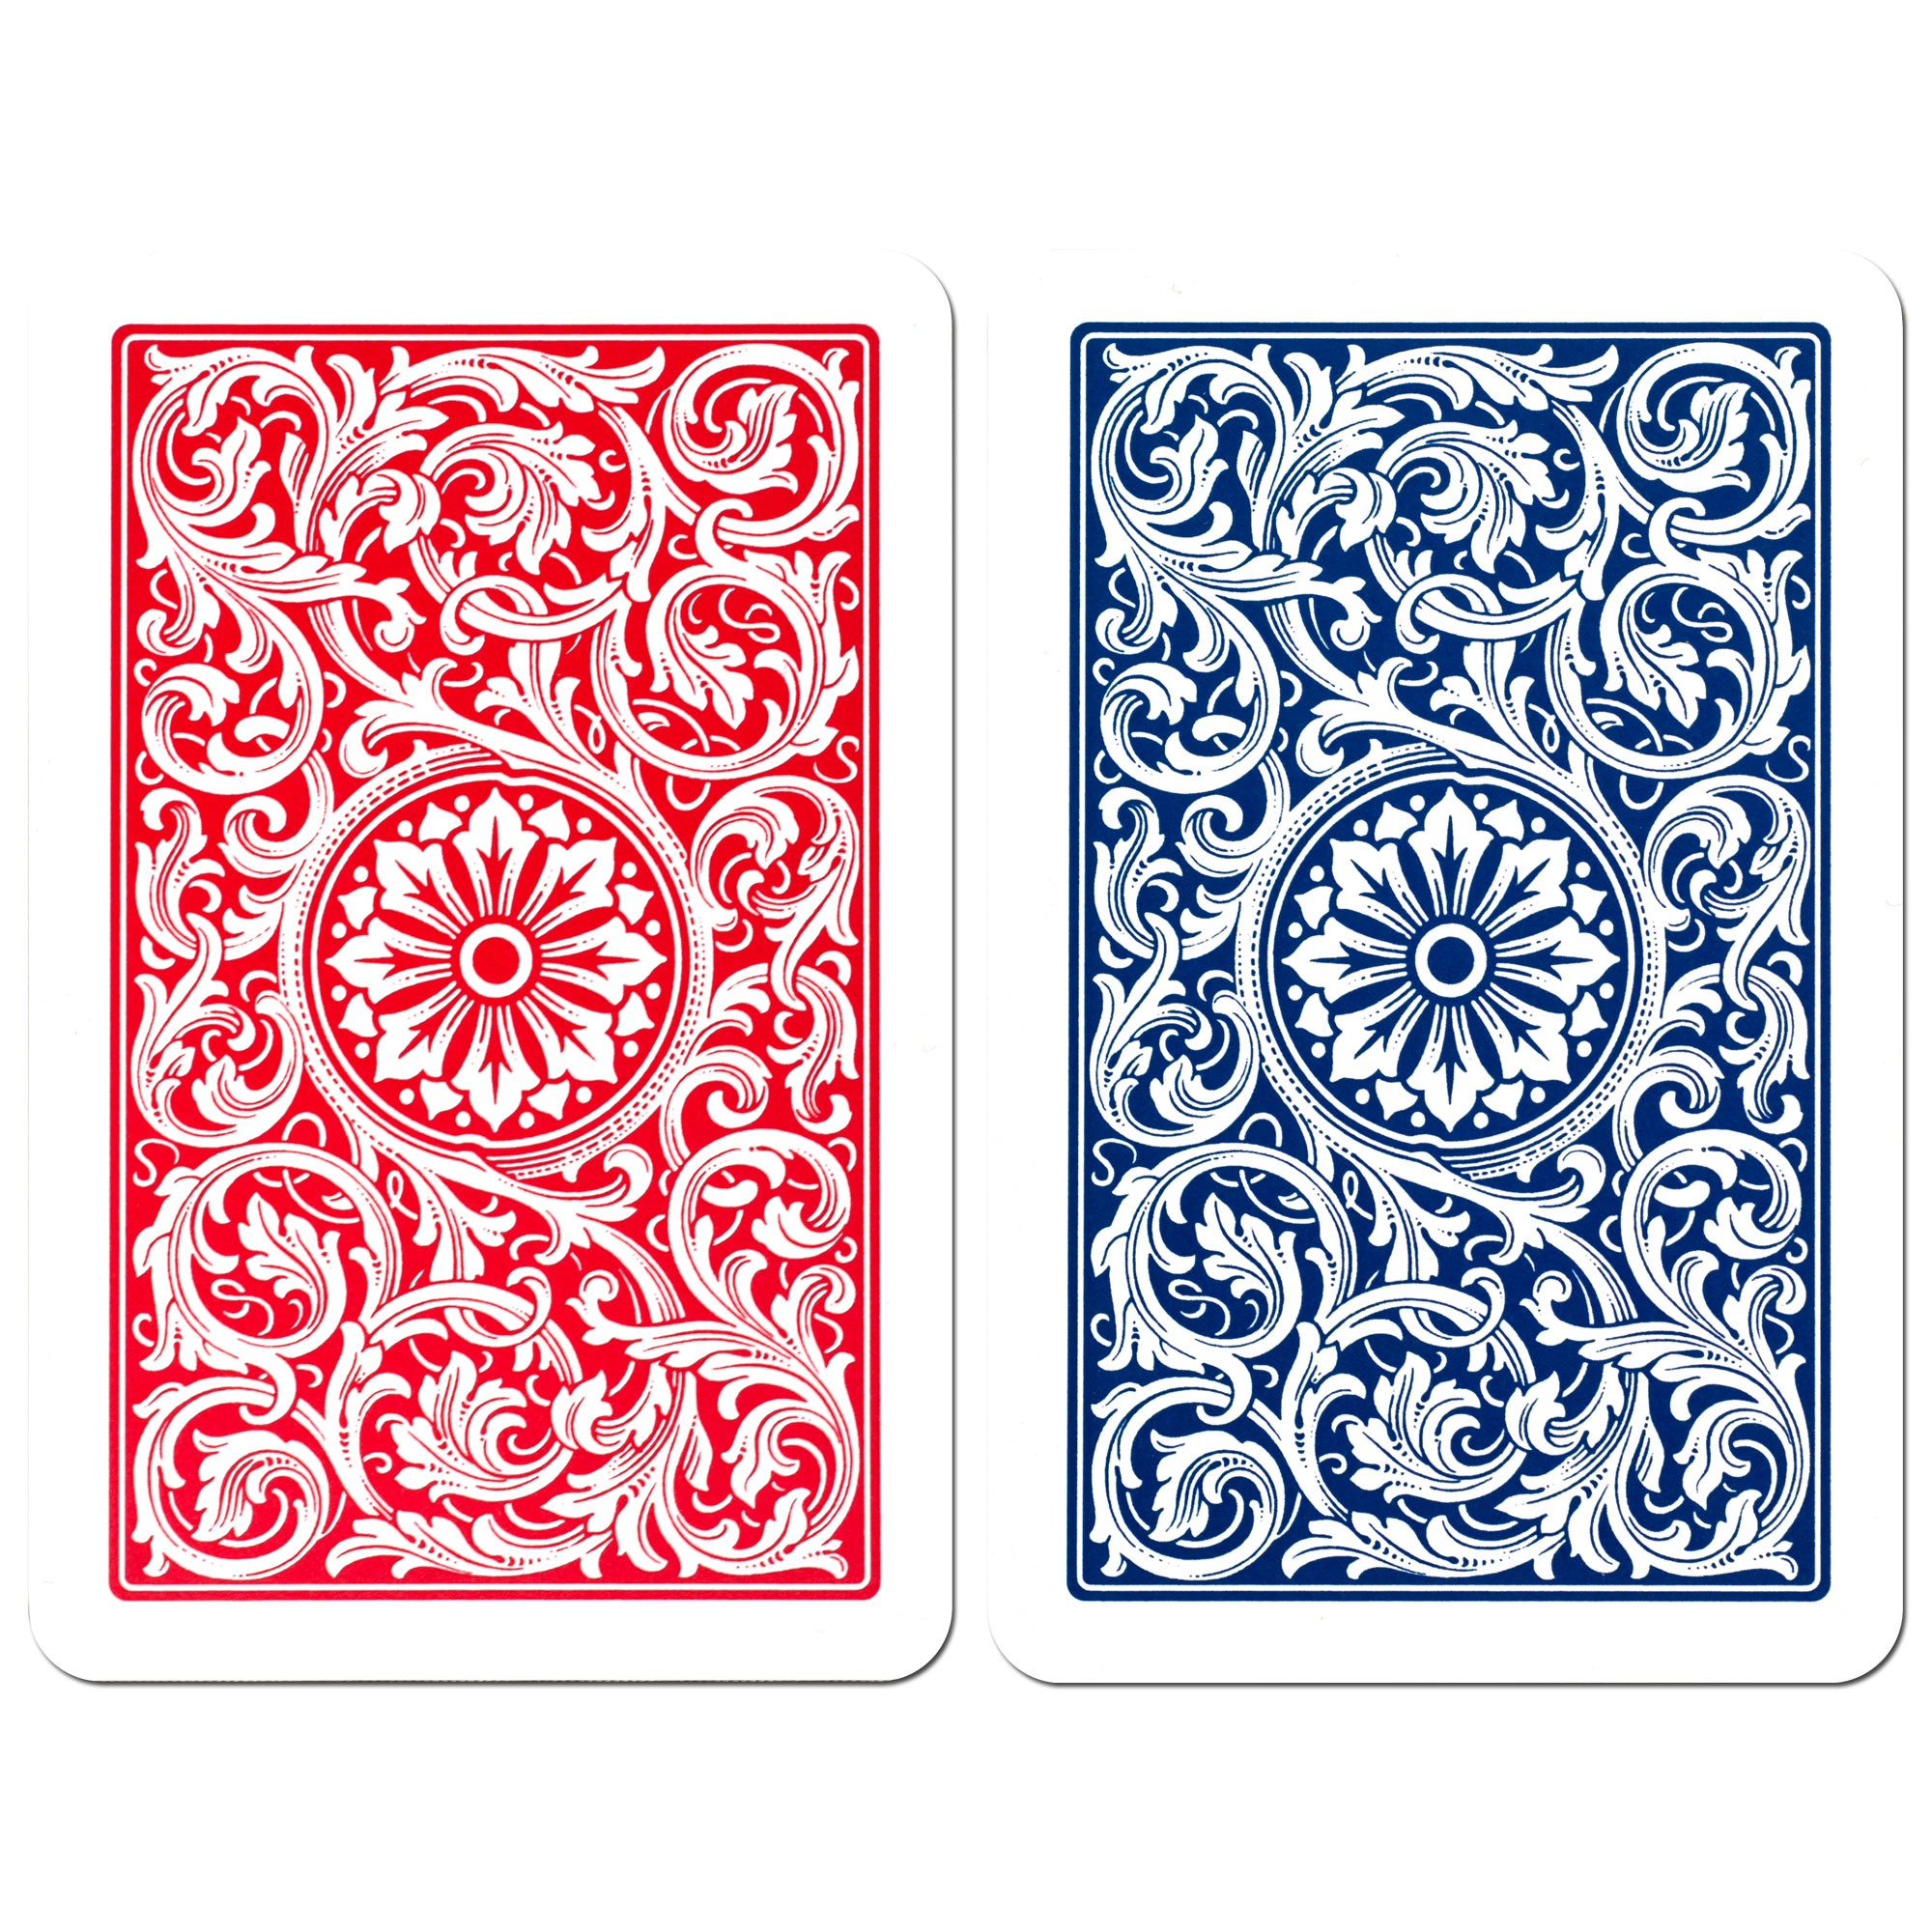 Back of playing card clipart image royalty free download Free Playing Card, Download Free Clip Art, Free Clip Art on Clipart ... image royalty free download